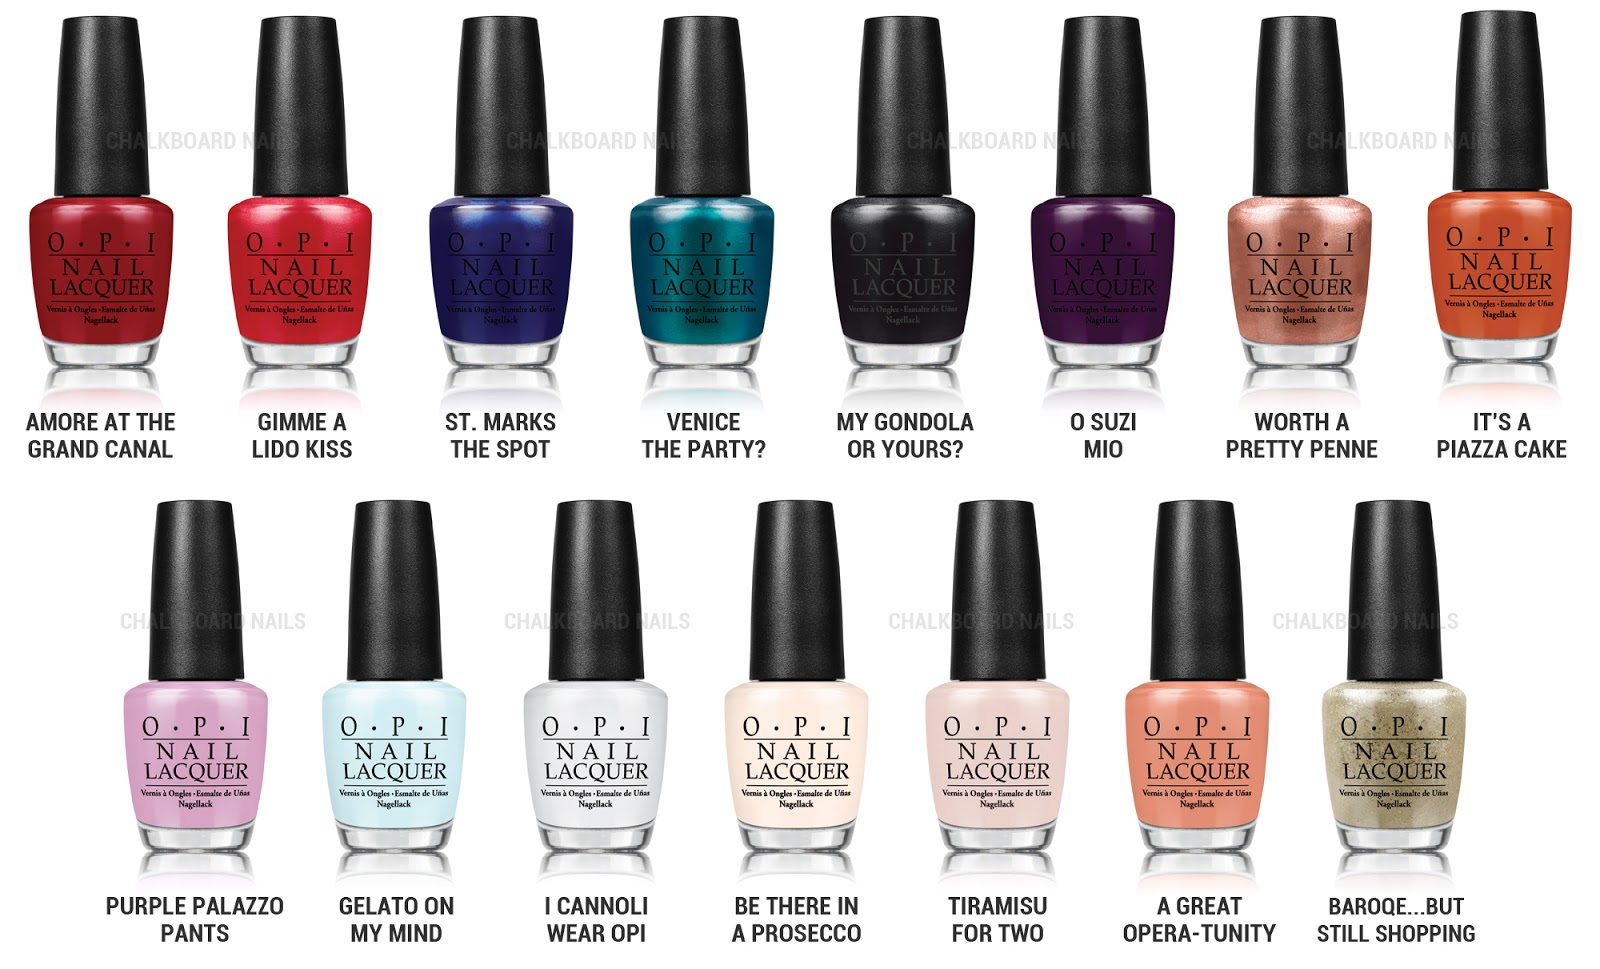 chalkboard nails news: opi venice collection for fall/winter 2015